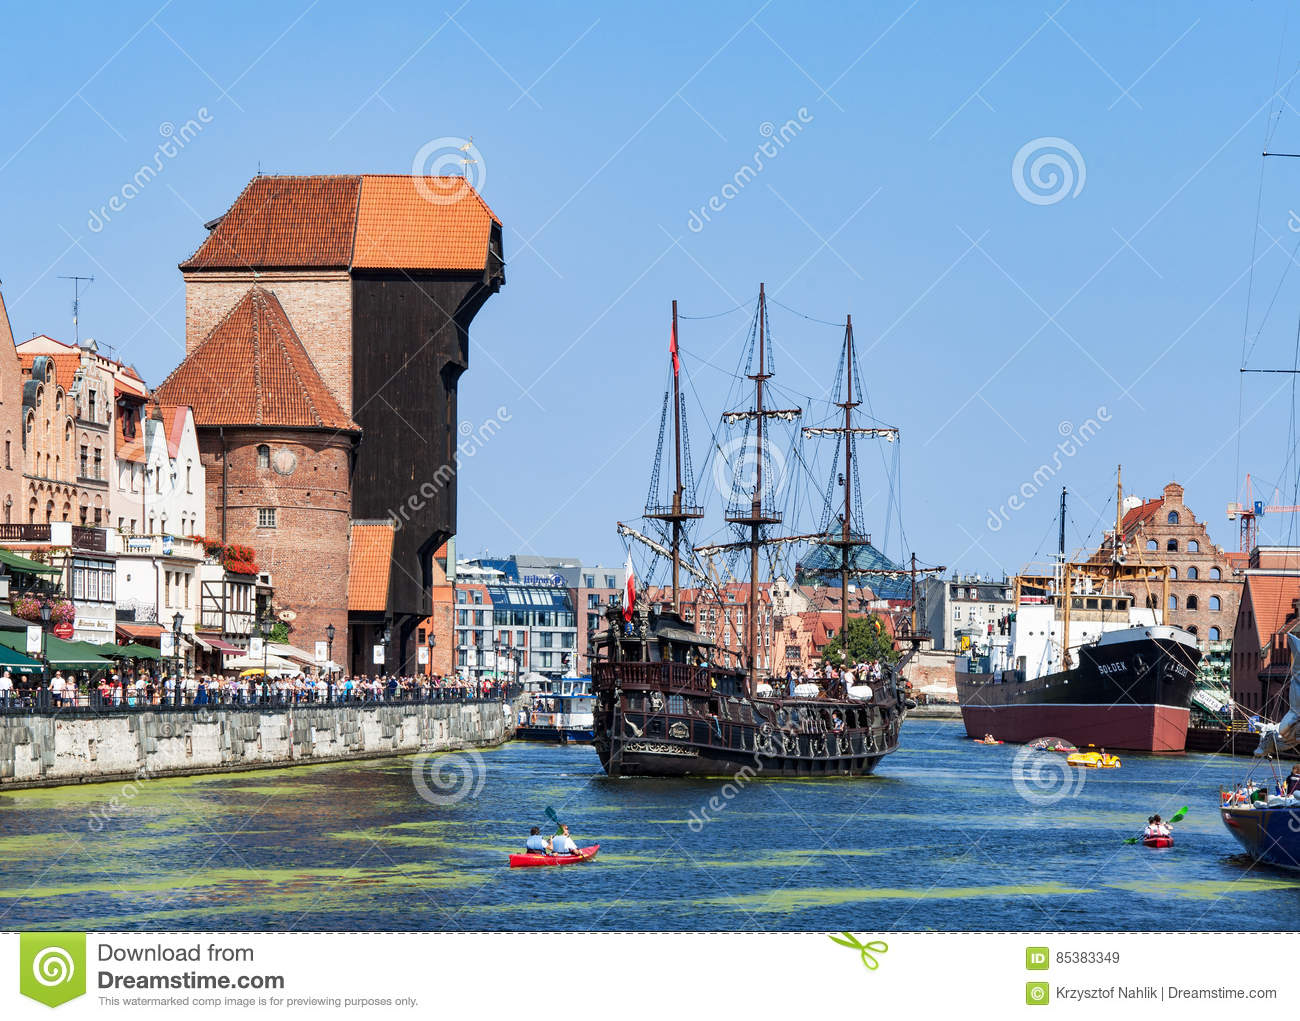 Gdansk, Poland. Medieval crane and pirate ship